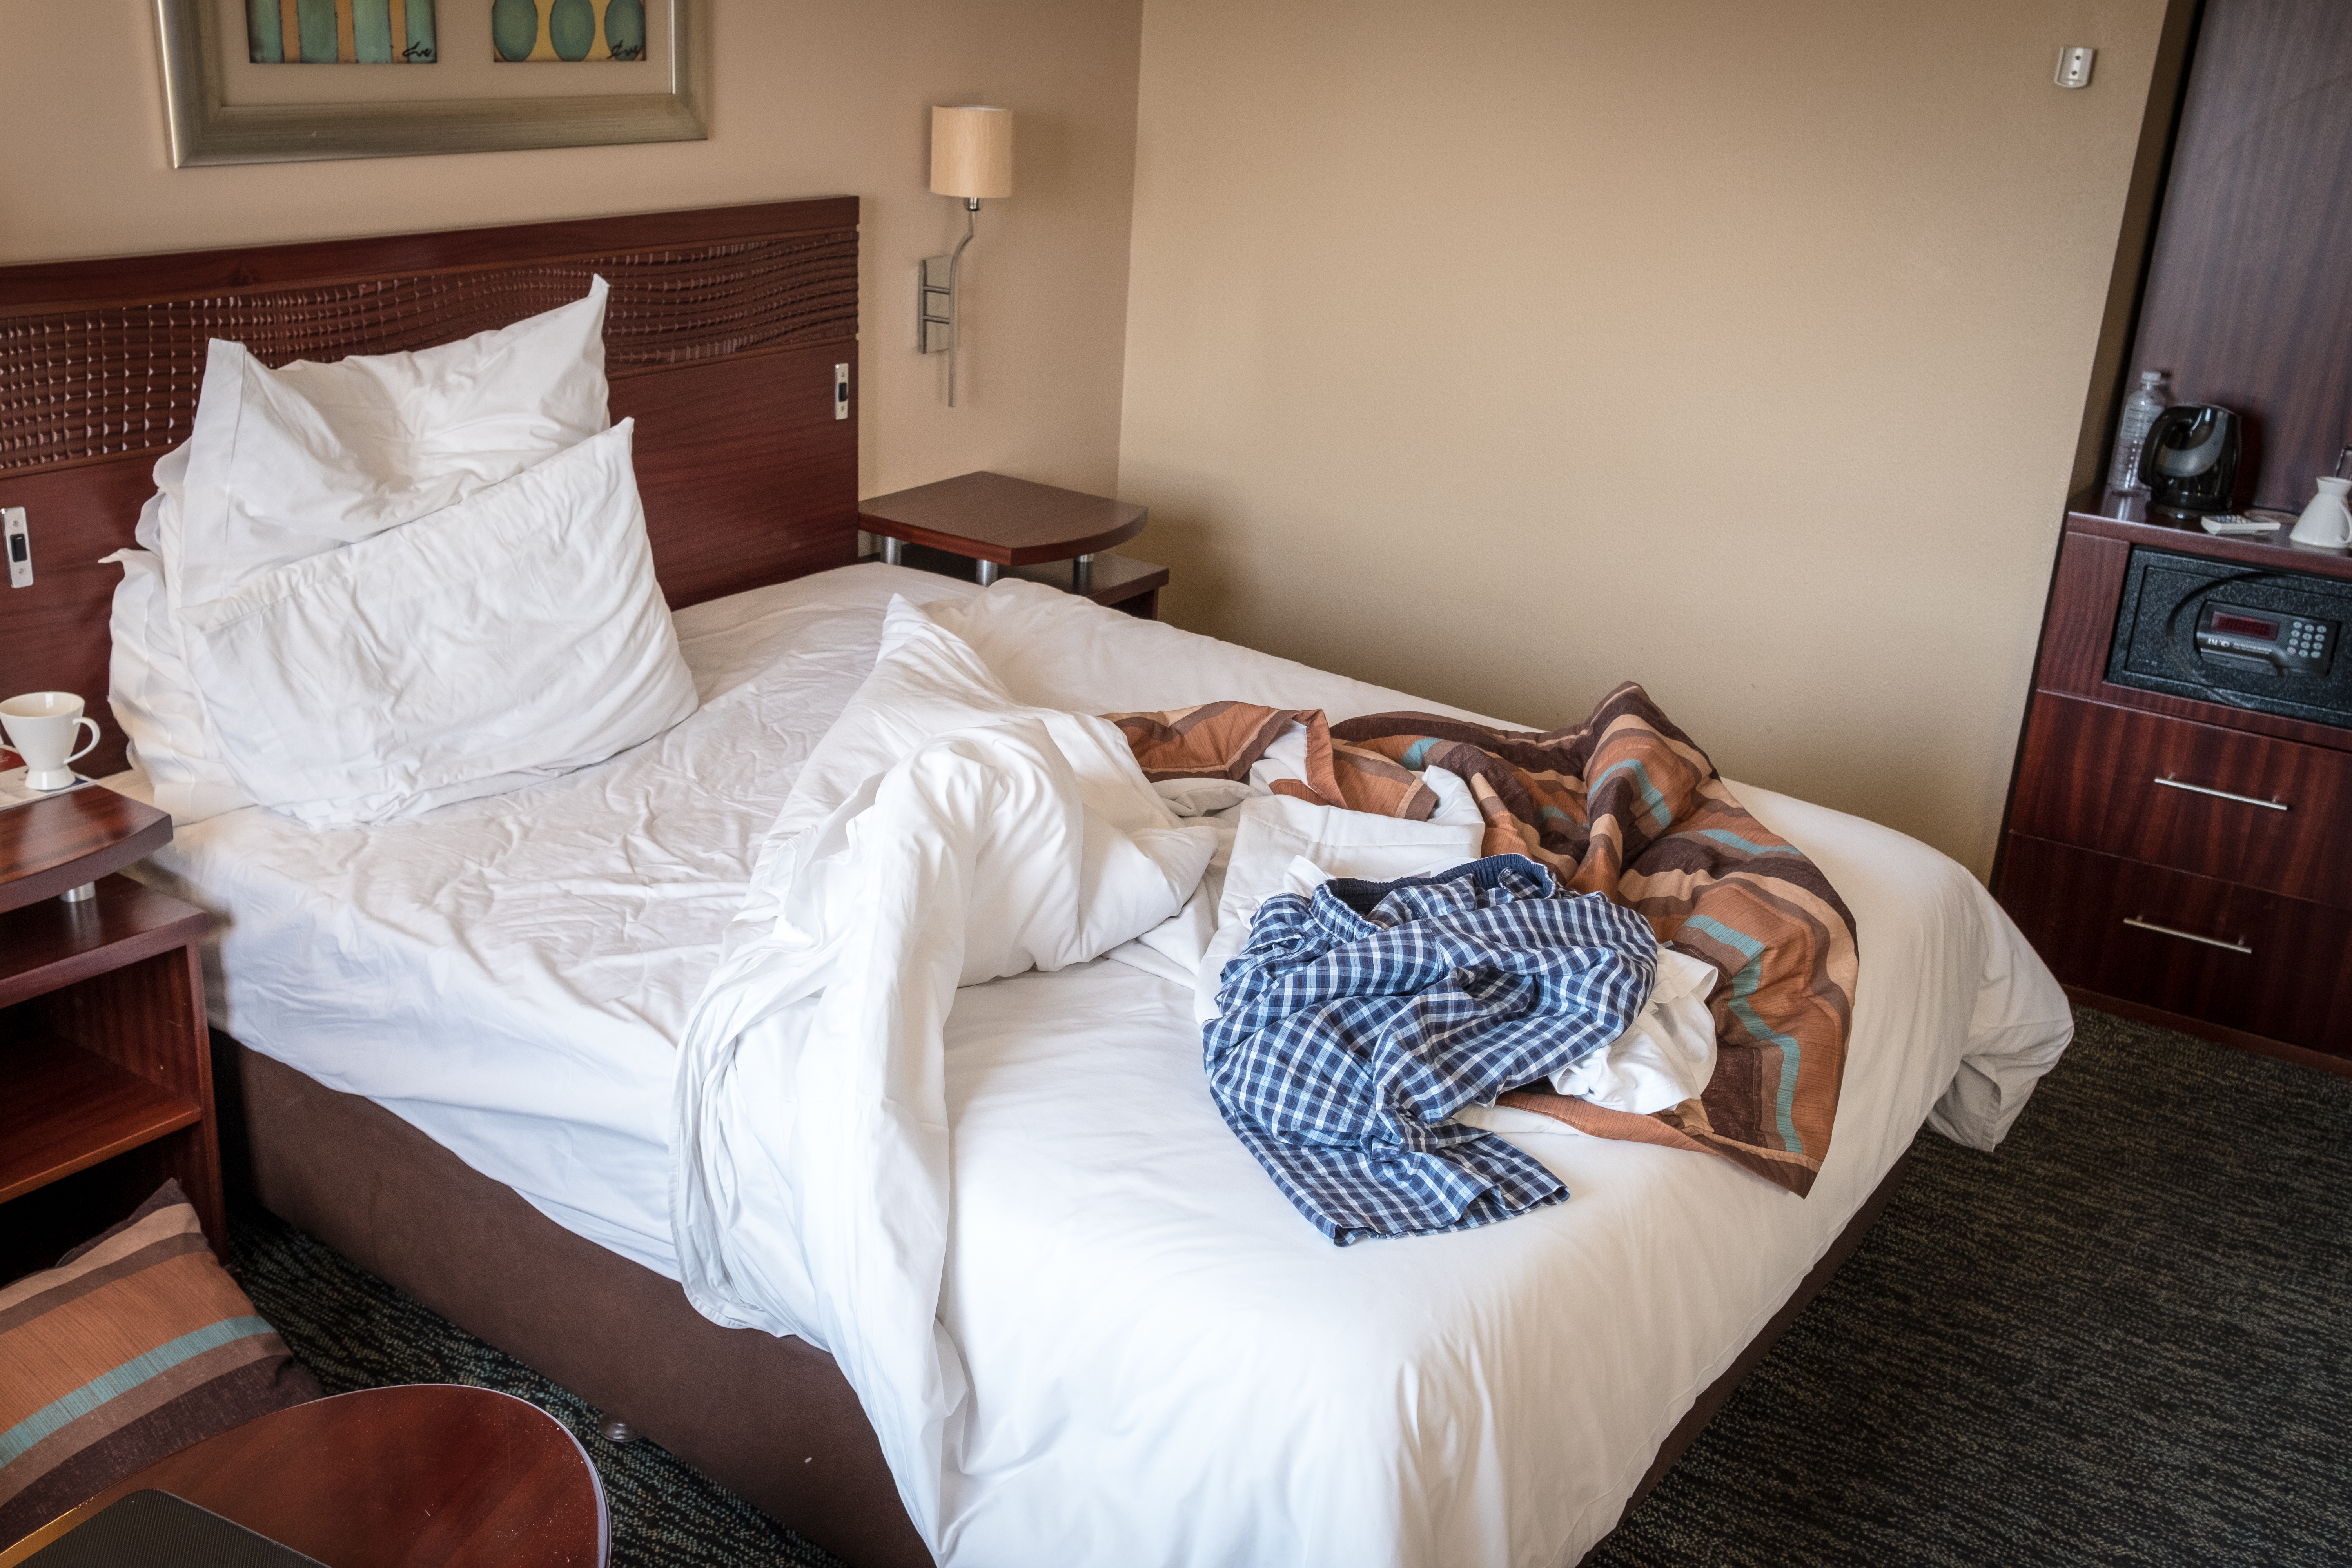 A photo of an untidy hotel room, hotel rooms are often dirty